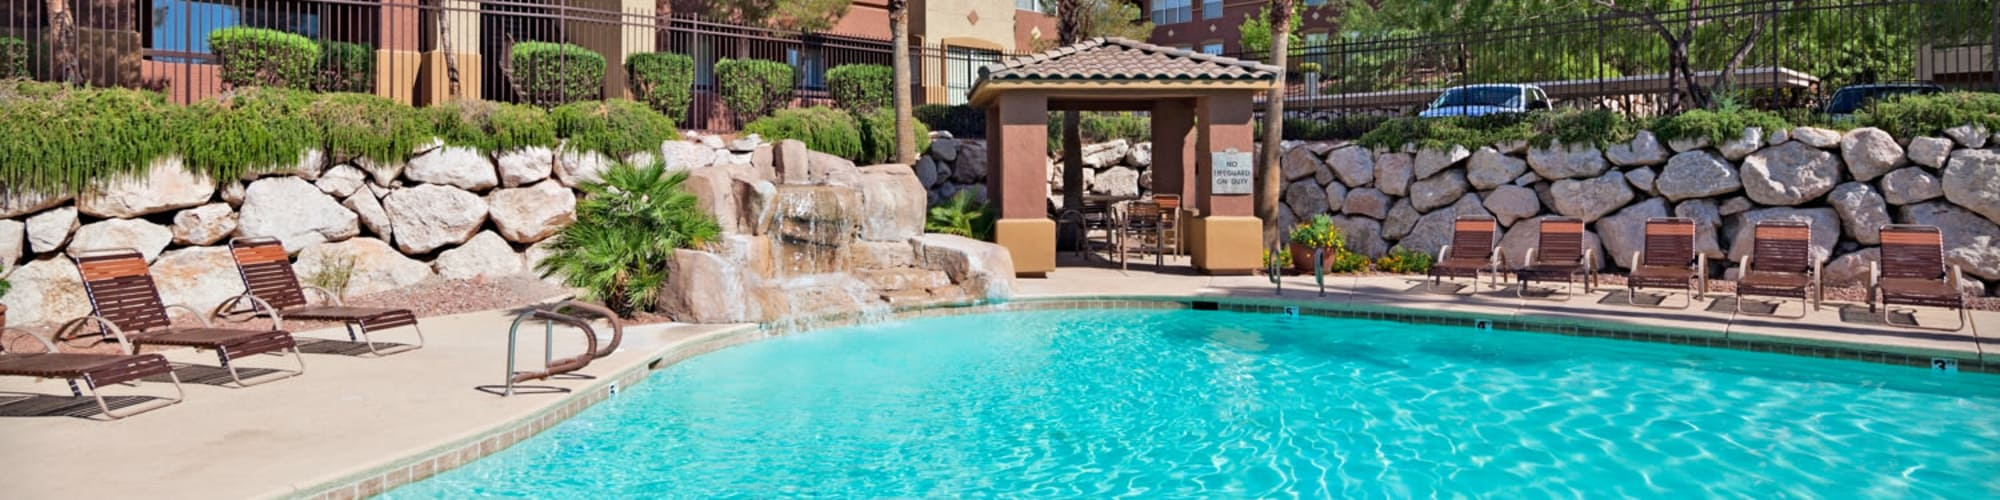 Amenities at Allegro at La Entrada in Henderson, Nevada